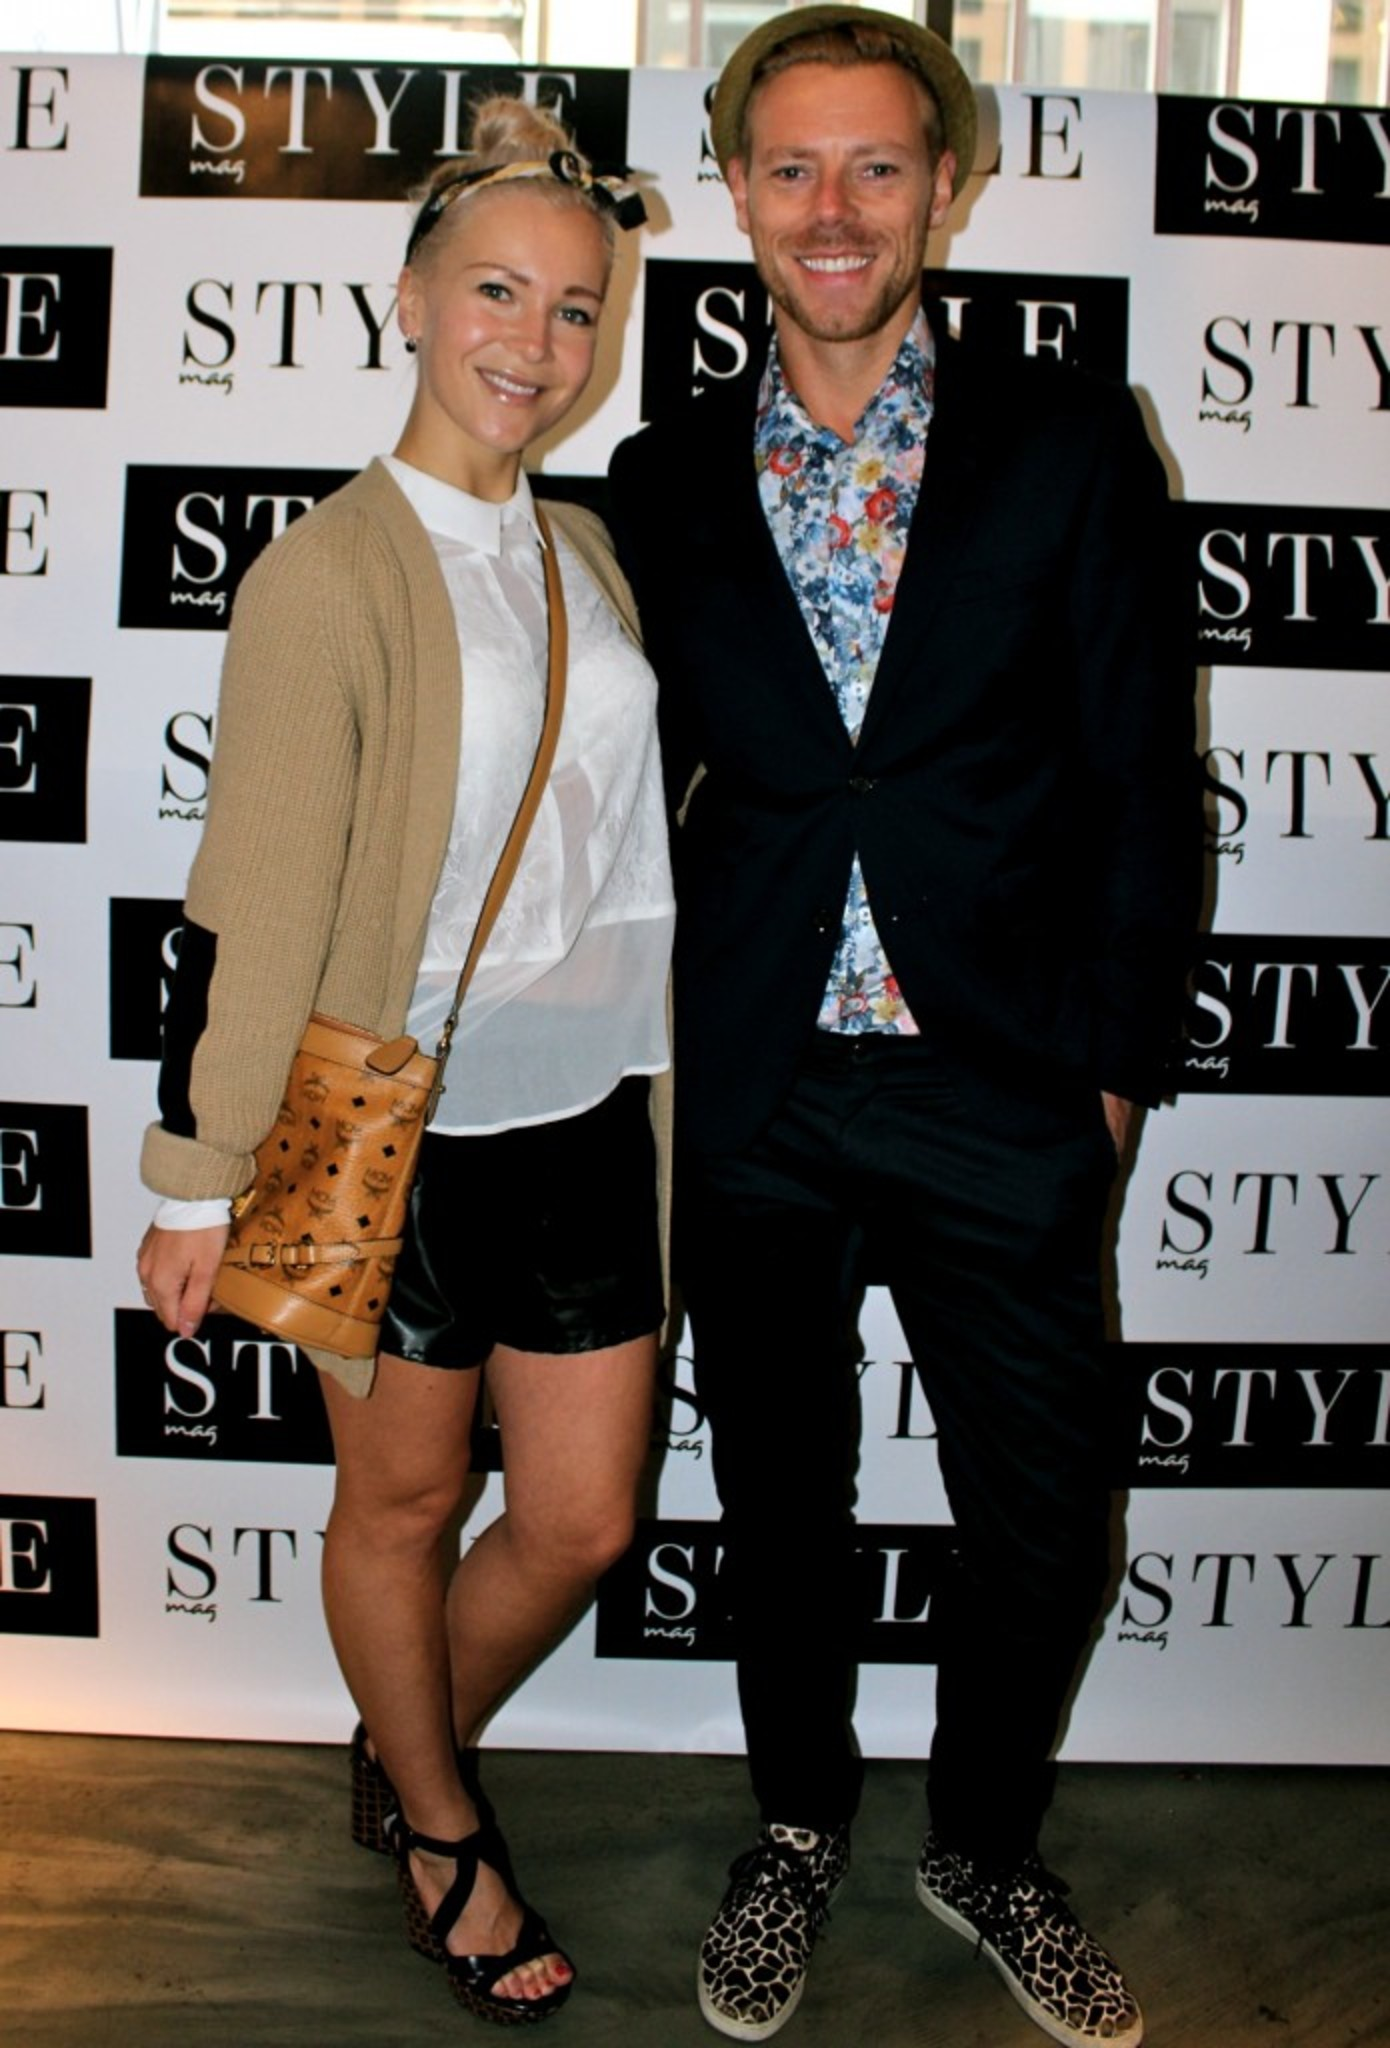 Stylish peeps at STYLEMAG event :) Here with Espen Hilton <3